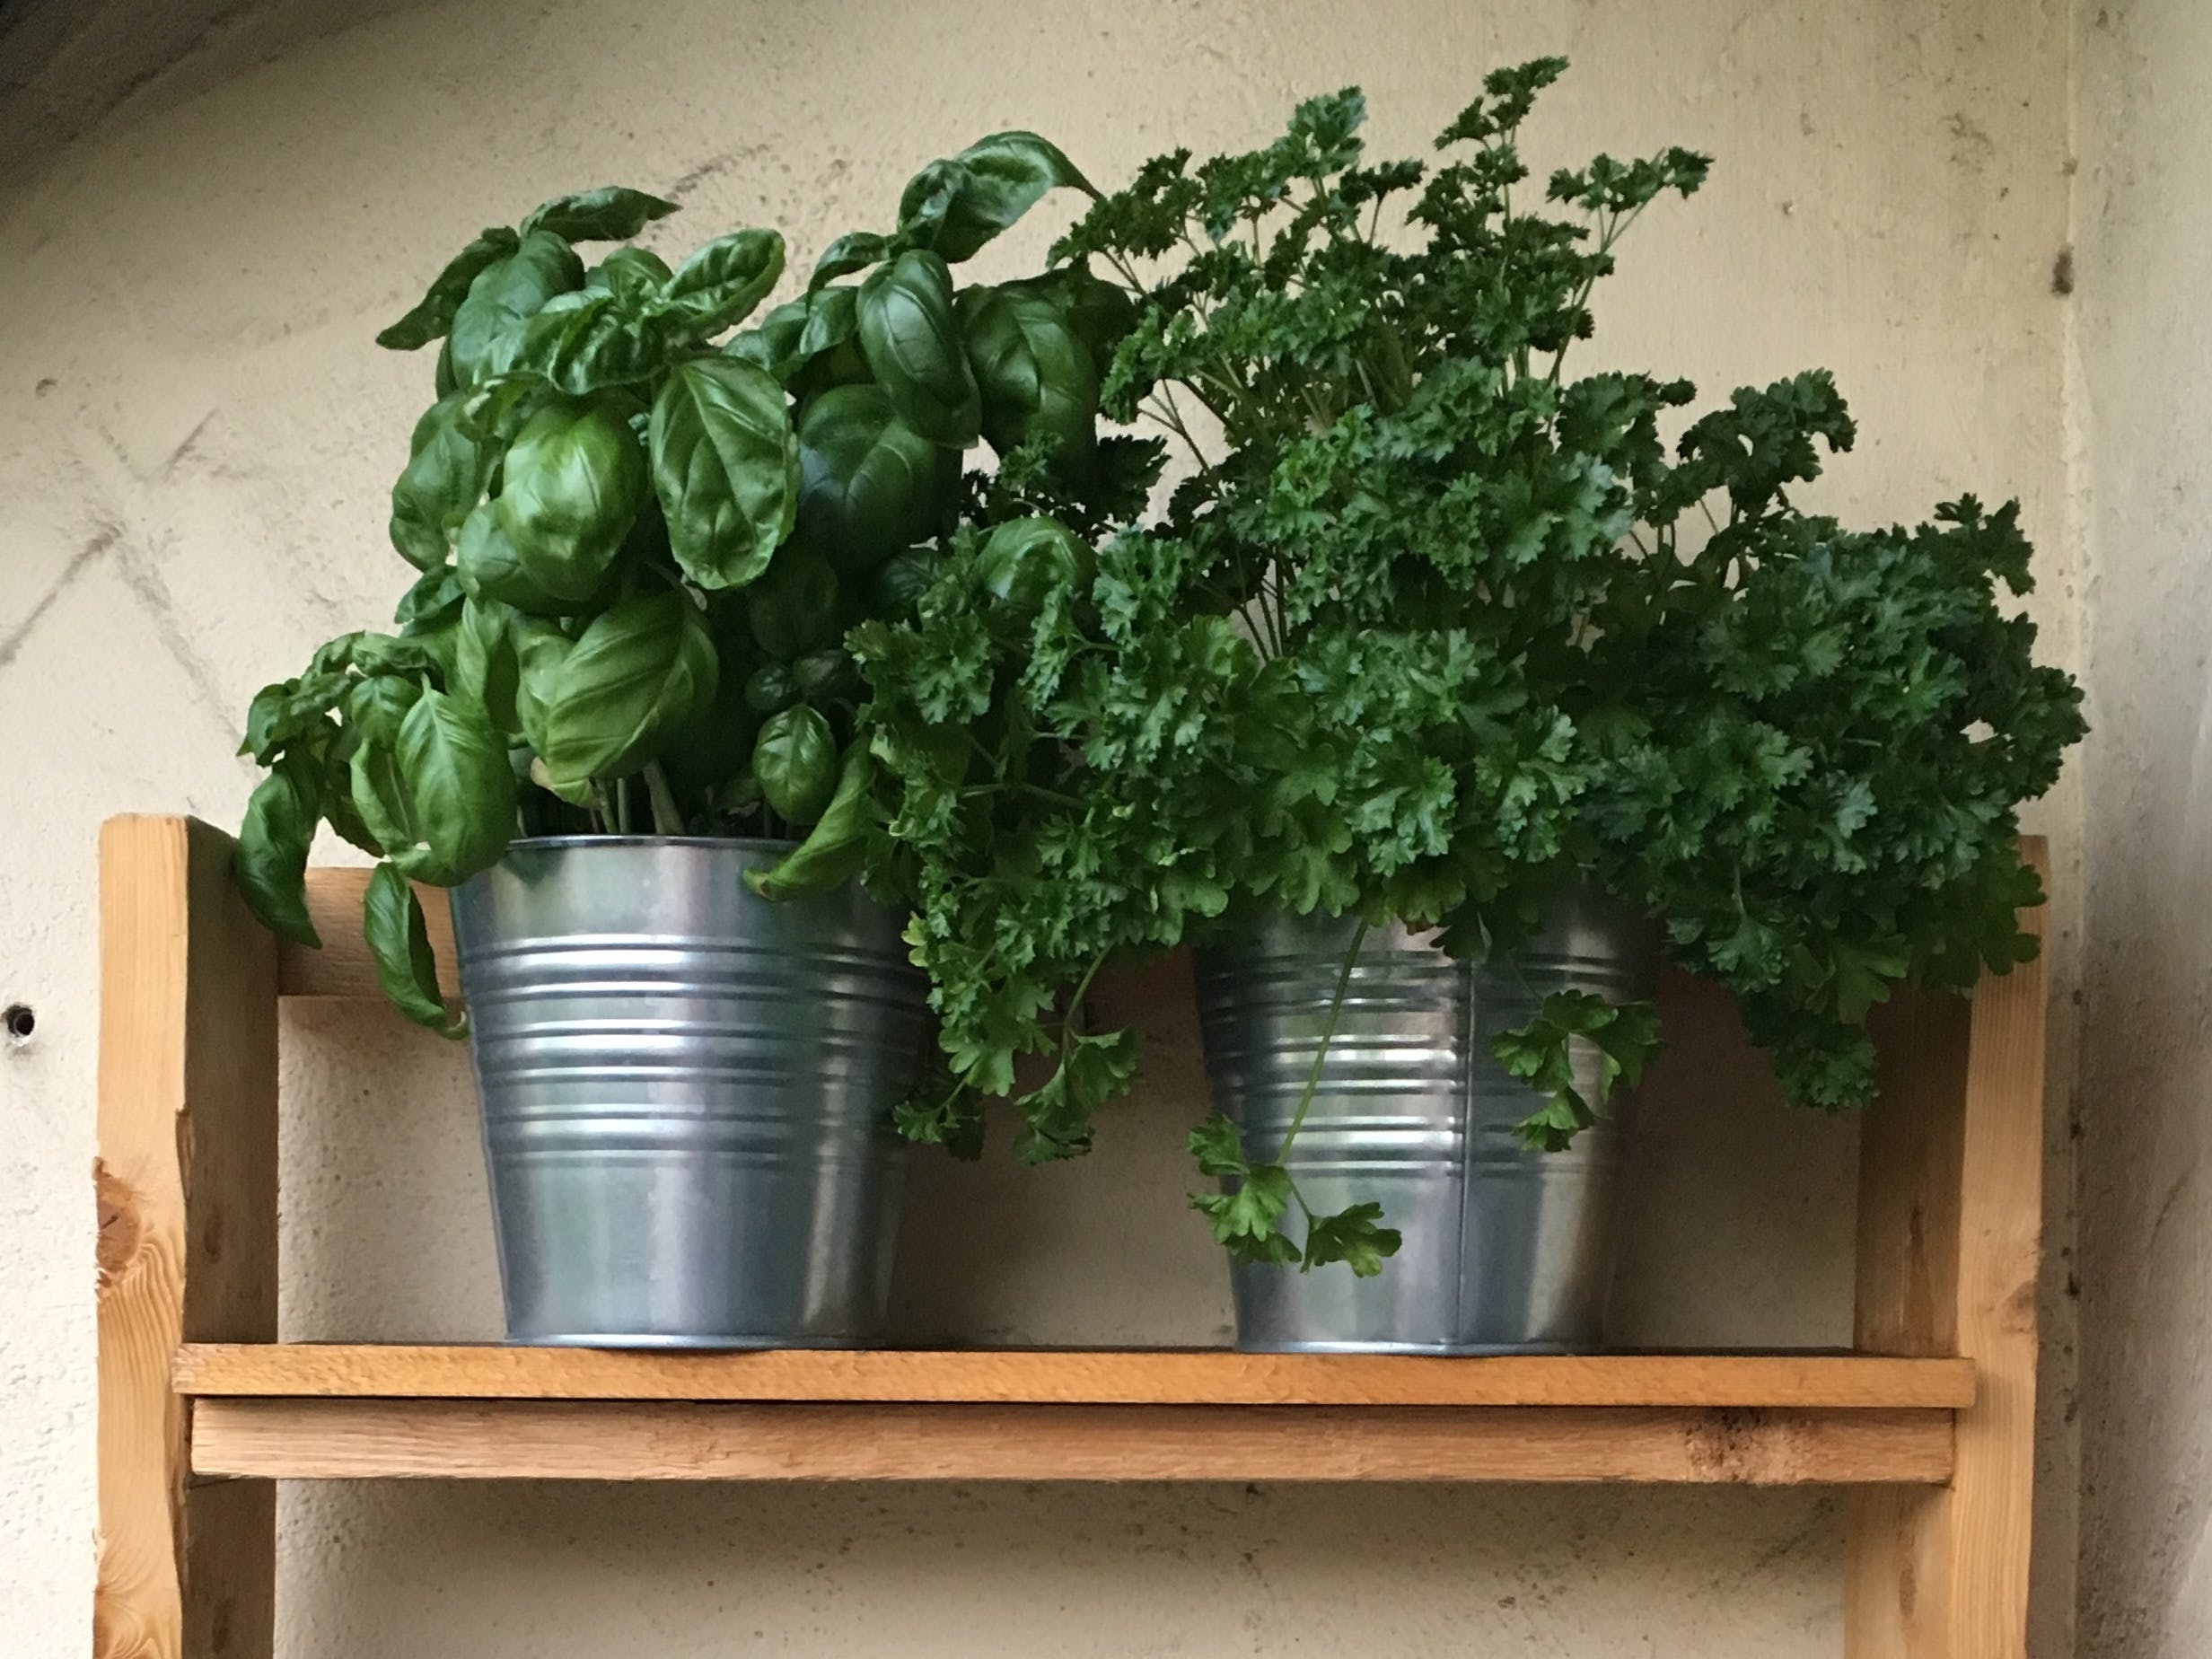 Real-Time Clock Controlled Herbal Garden Watering System